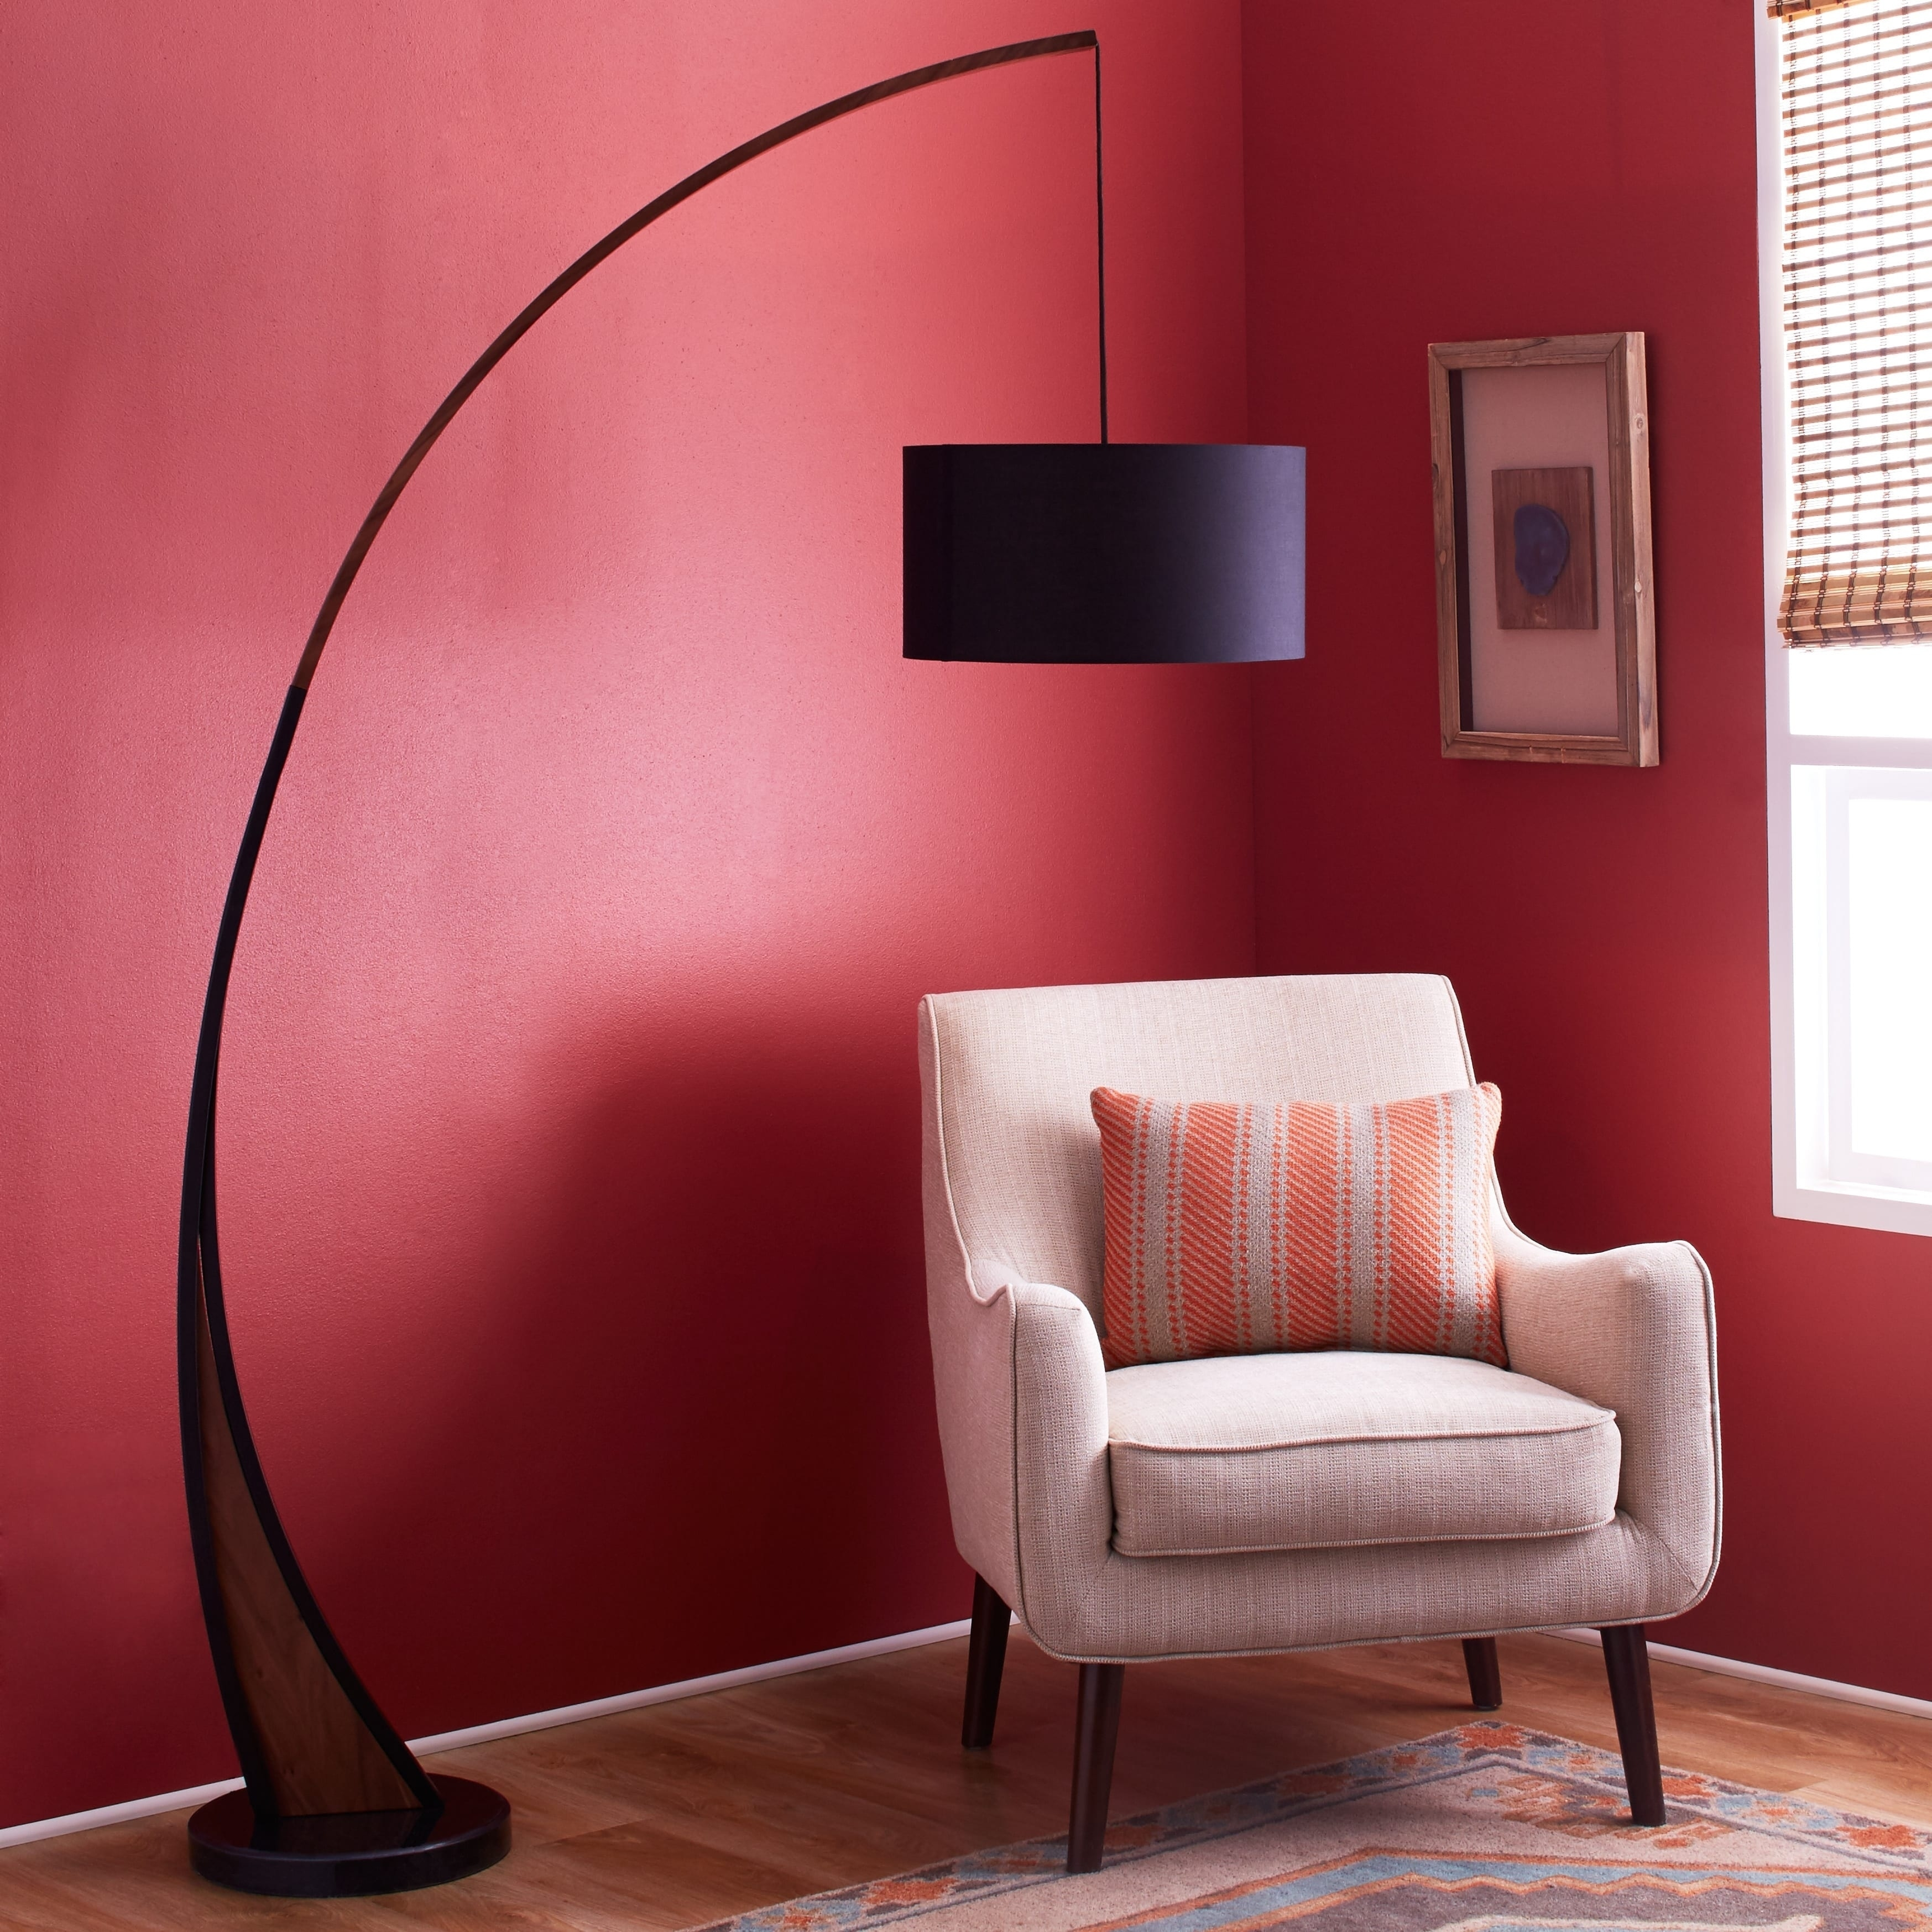 683e85d2fdd95 Shop Noah Mid-century Modern Floor Lamp With Walnut Wood Frame and Marble  Base - Free Shipping On Orders Over  45 - Overstock - 11883781